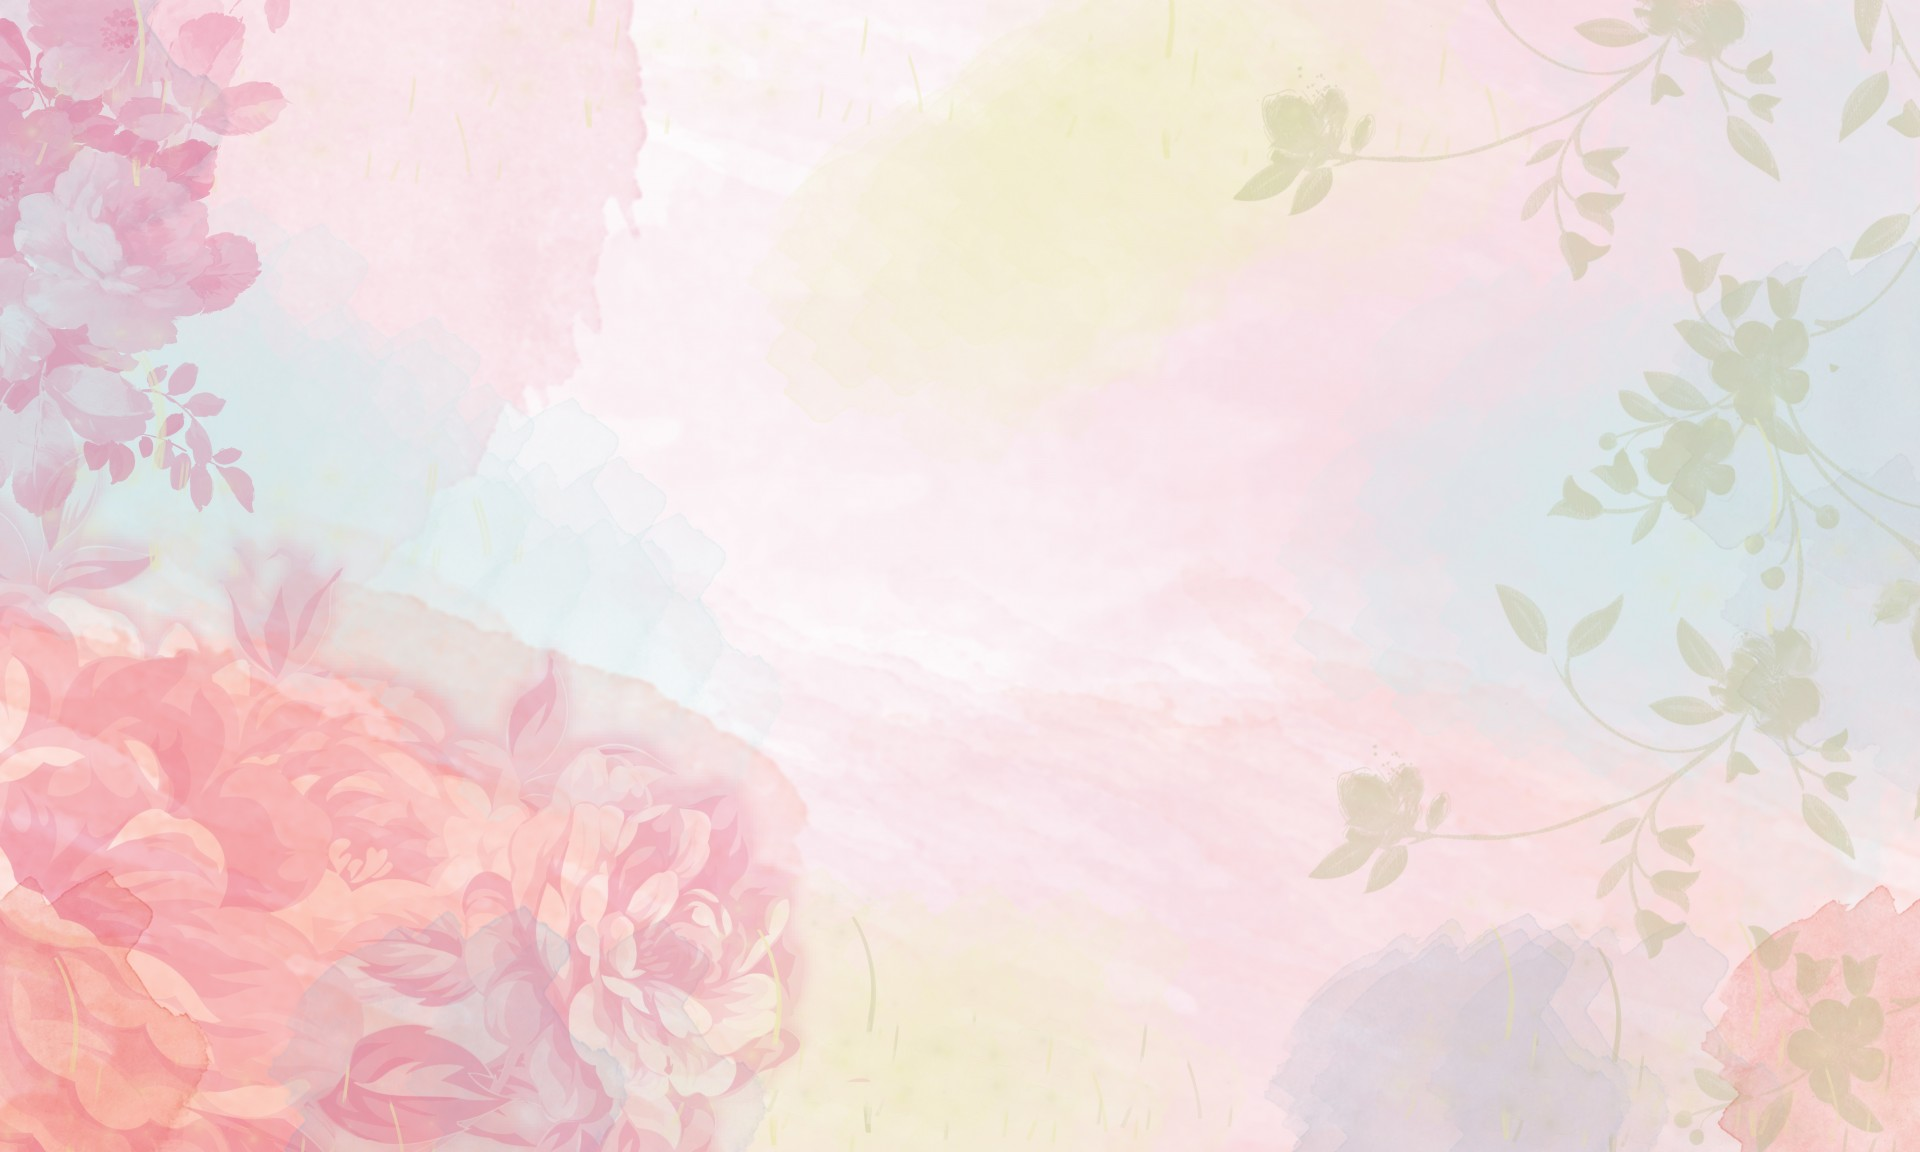 Watercolor Background Wallpaper At Getdrawings Free Download